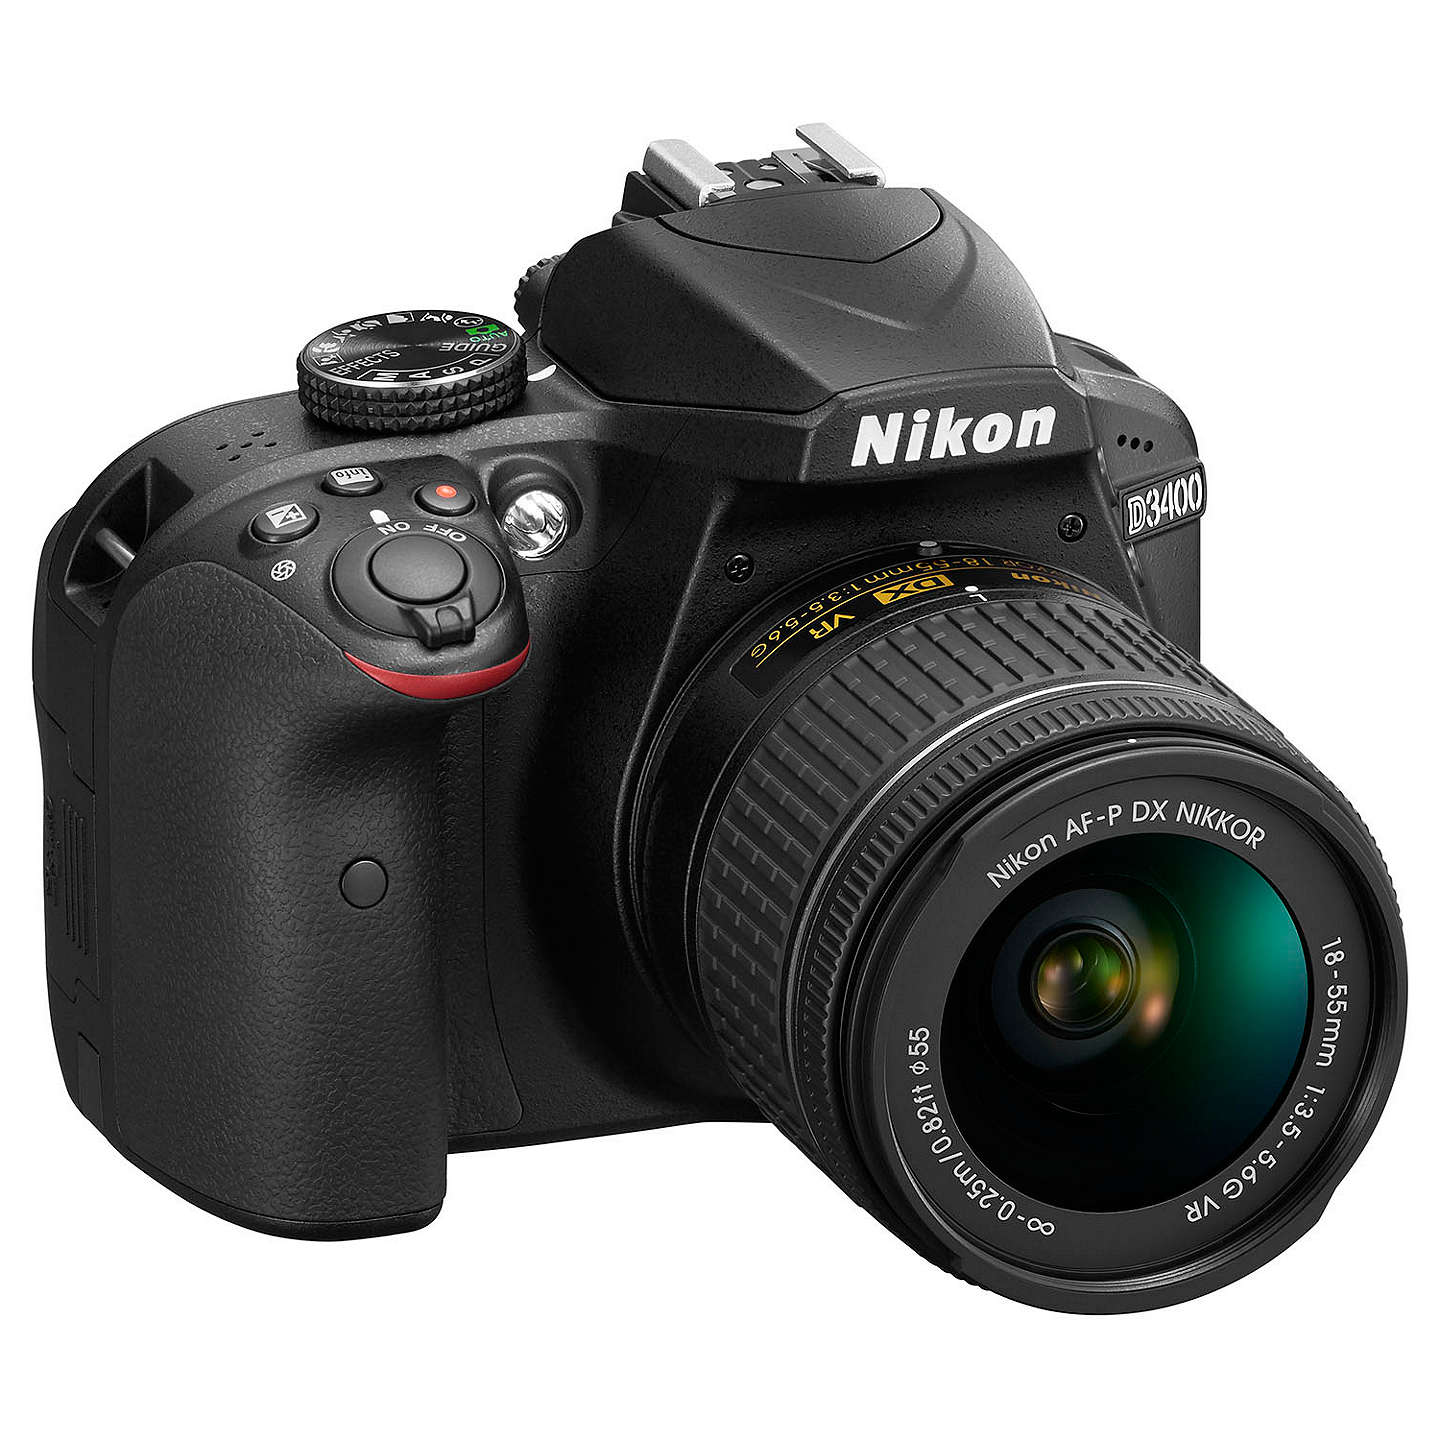 "BuyNikon D3400 Digital SLR Camera with 18-55mm VR Lens, HD 1080p, 24.2MP, Optical ViewFinder, 3"" LCD Monitor, Black Online at johnlewis.com"